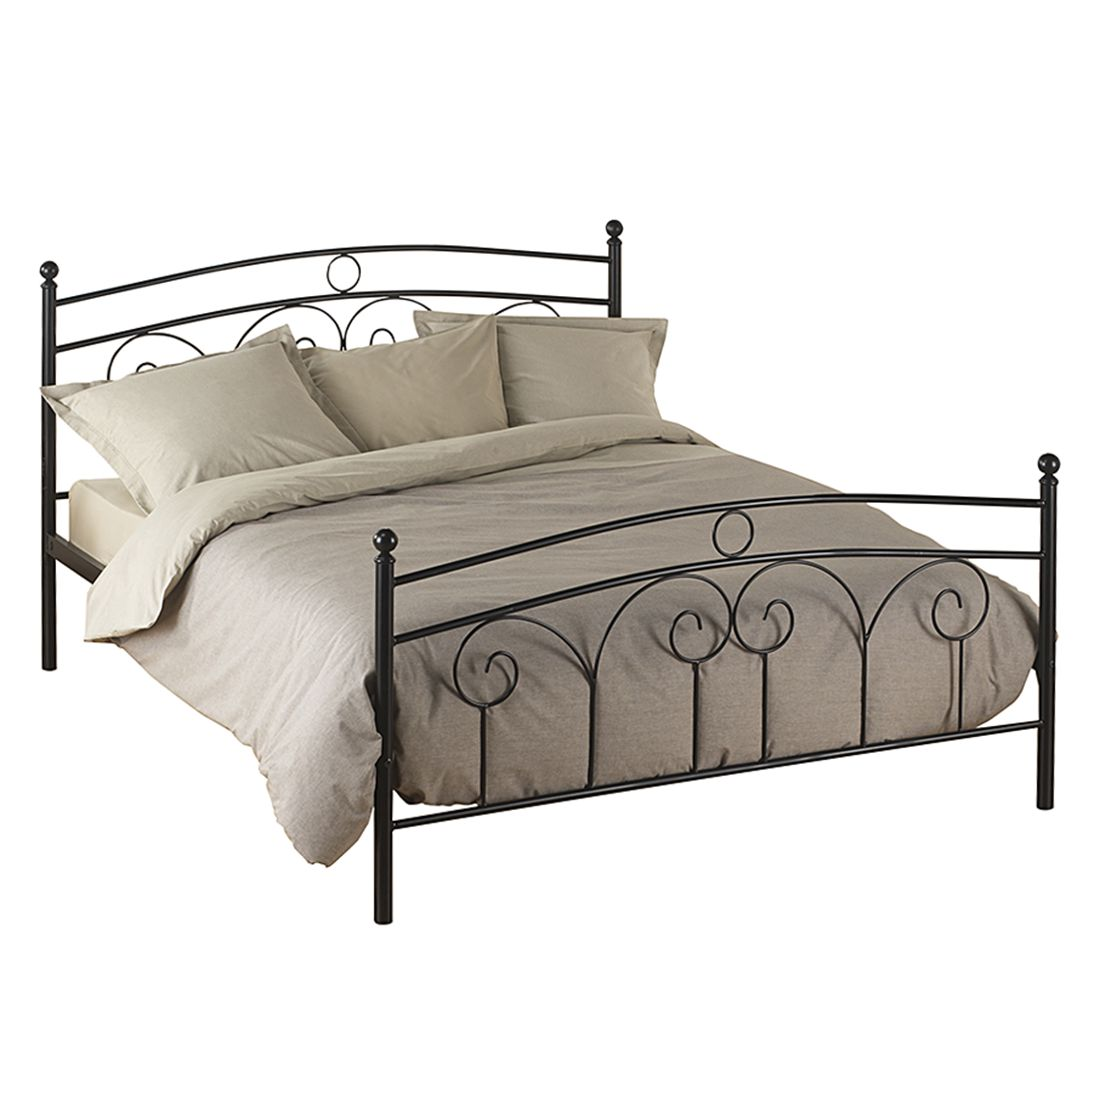 Metallbett Cama Betten Pinterest Home Deco New Homes Und Home